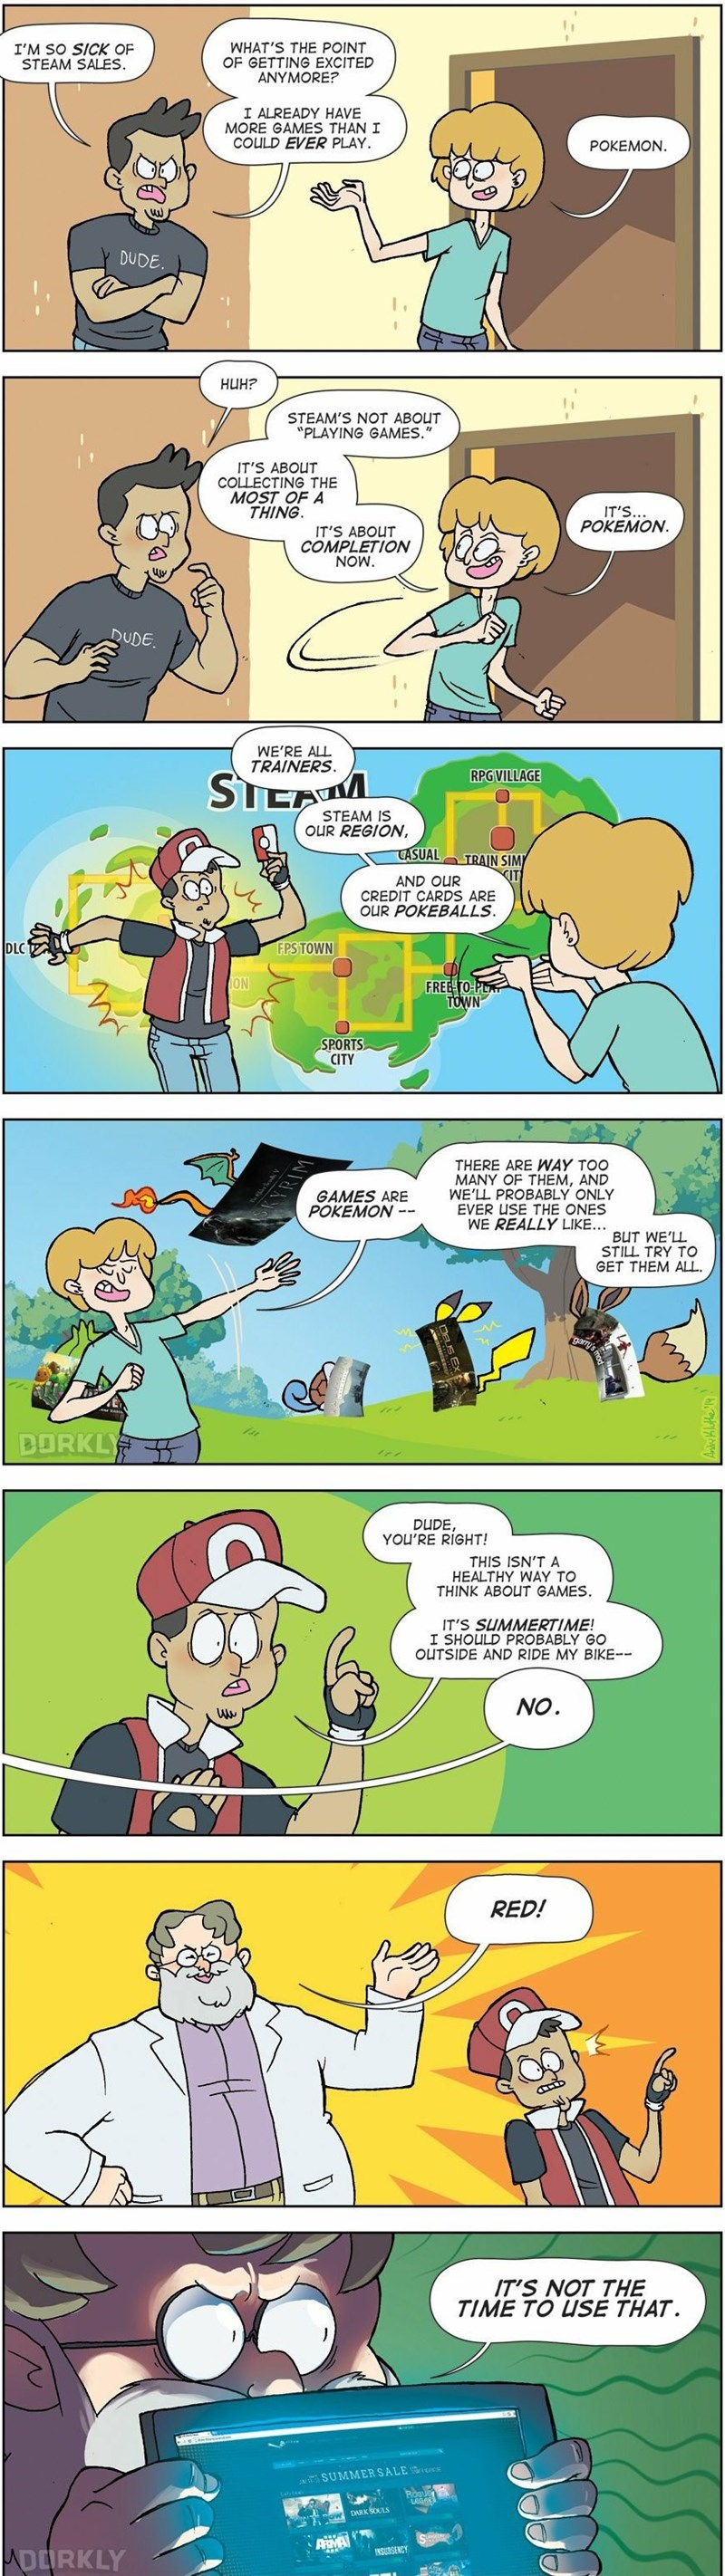 steam Pokémon web comics theory - 8761541120